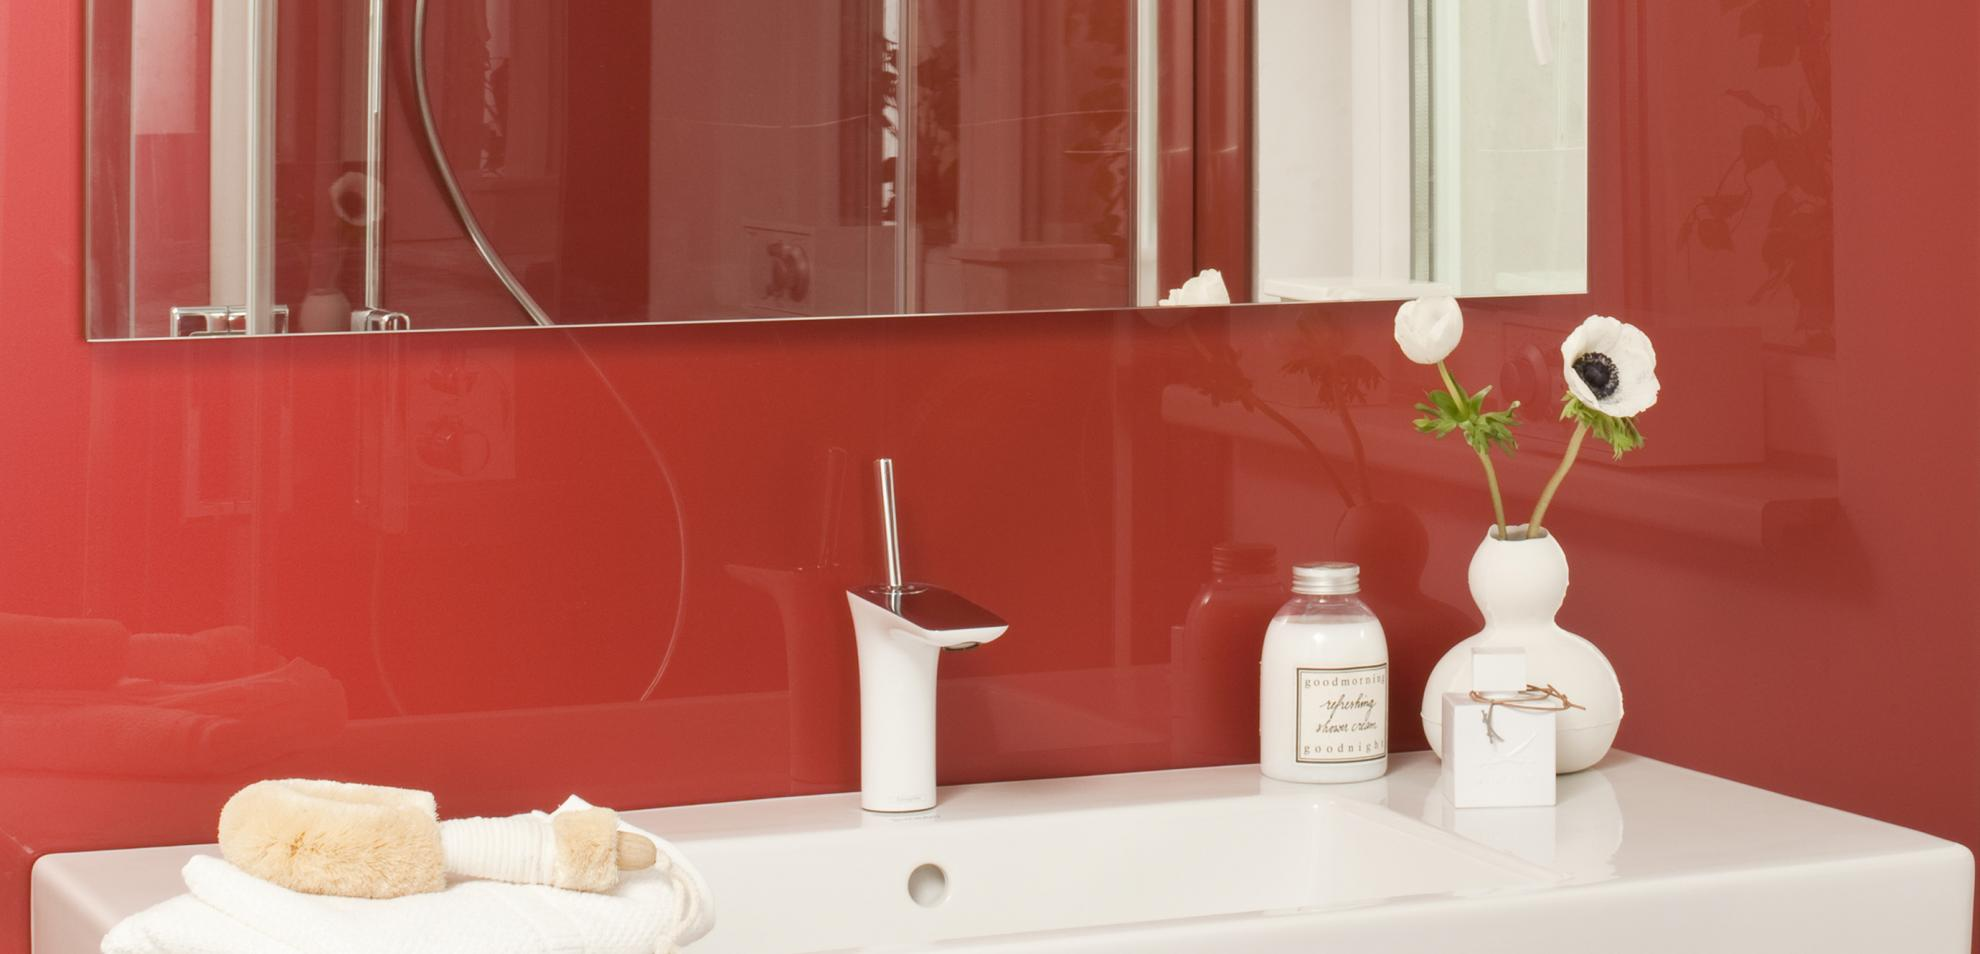 Wall Cladding Without Tiles With Plexiglas Plexiglas Online Kaufen